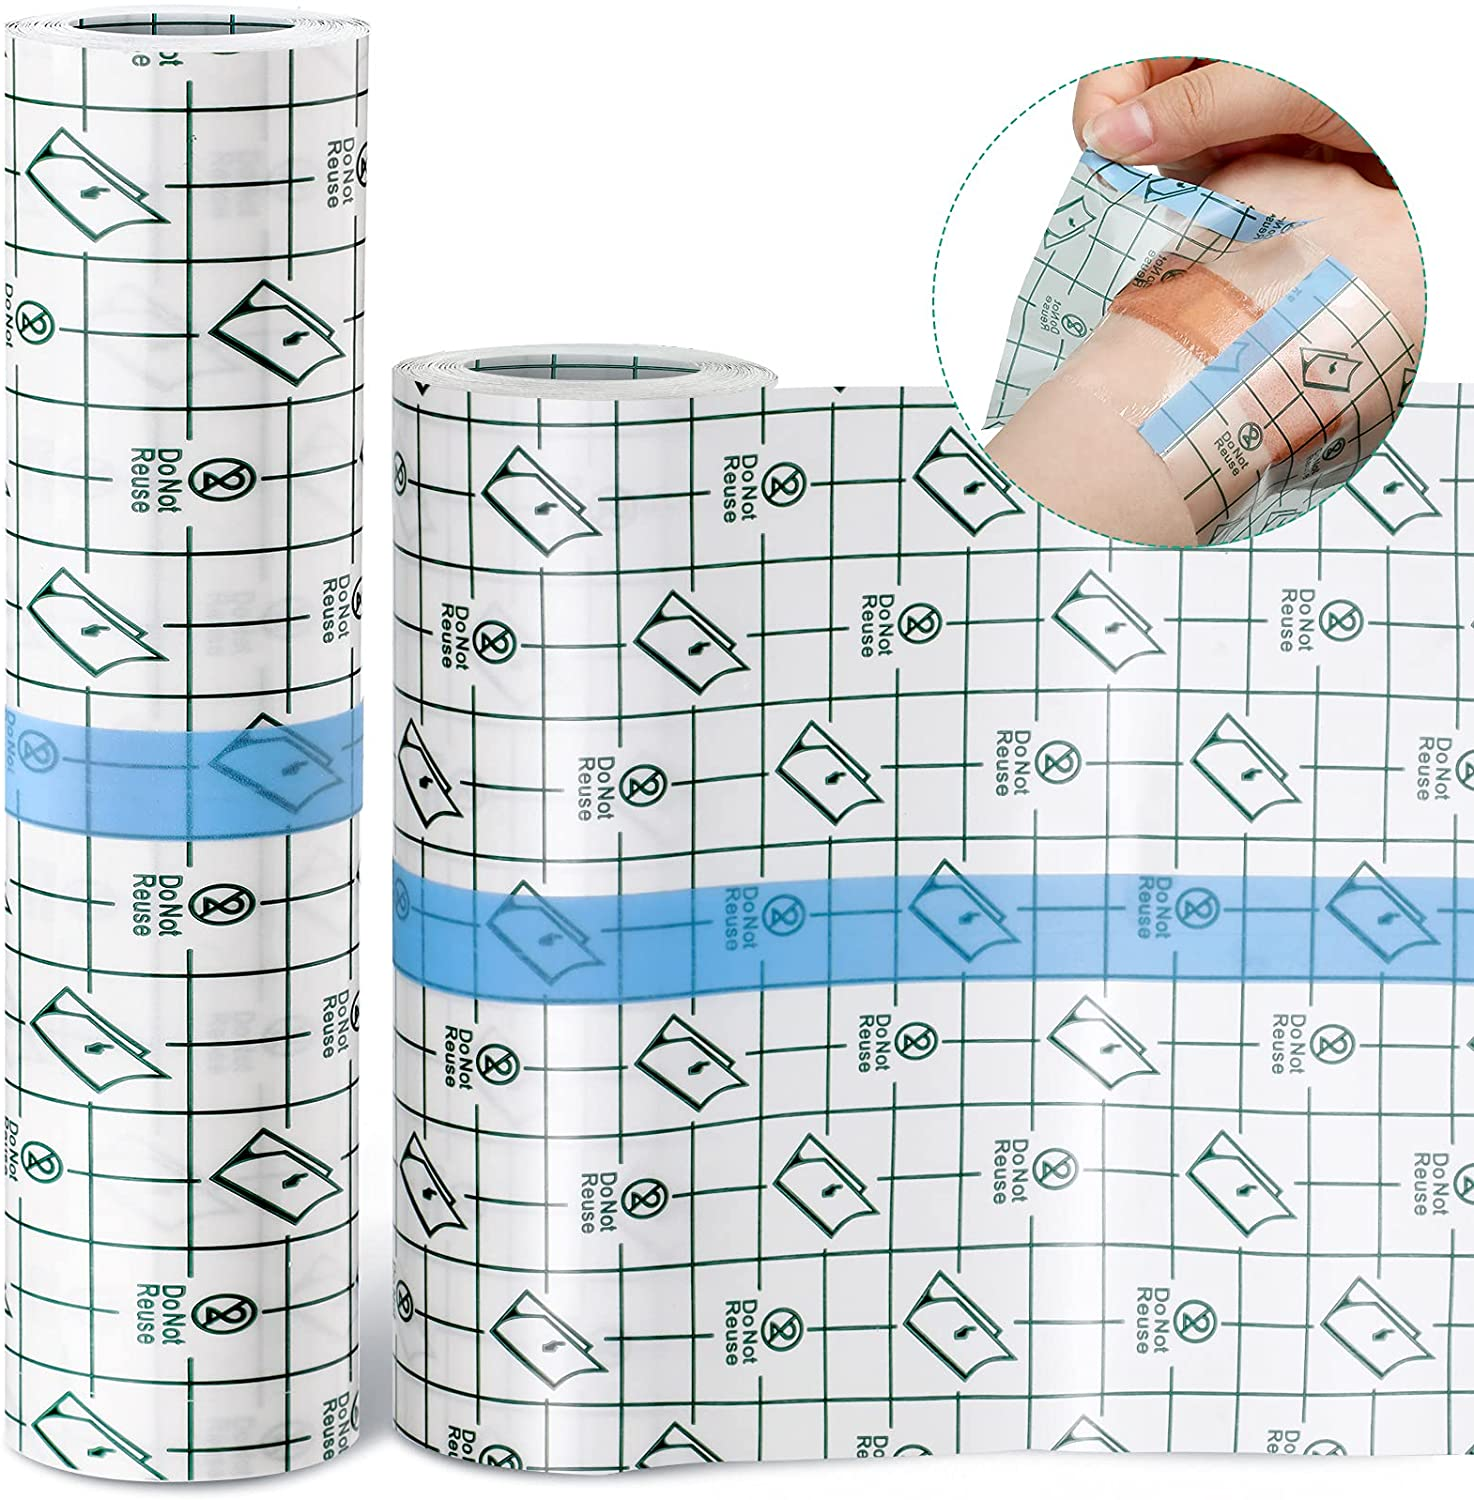 2 Rolls Transparent Max 50% OFF Stretch Bandage Waterproof Adhesive Protecti Limited Special Price